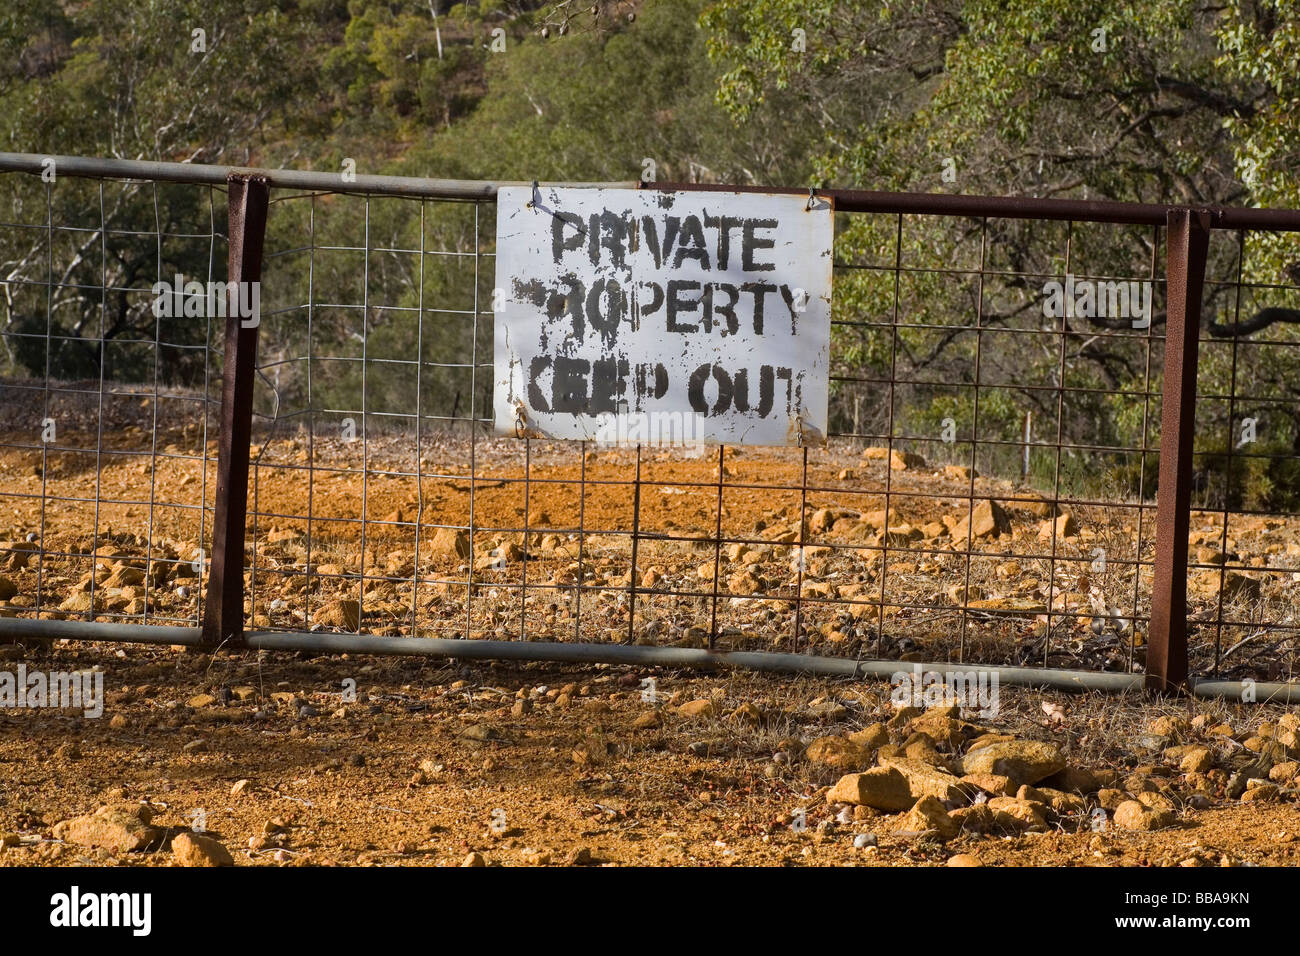 Worn old Keep Out Private Property sign in the Australian countryside - Stock Image